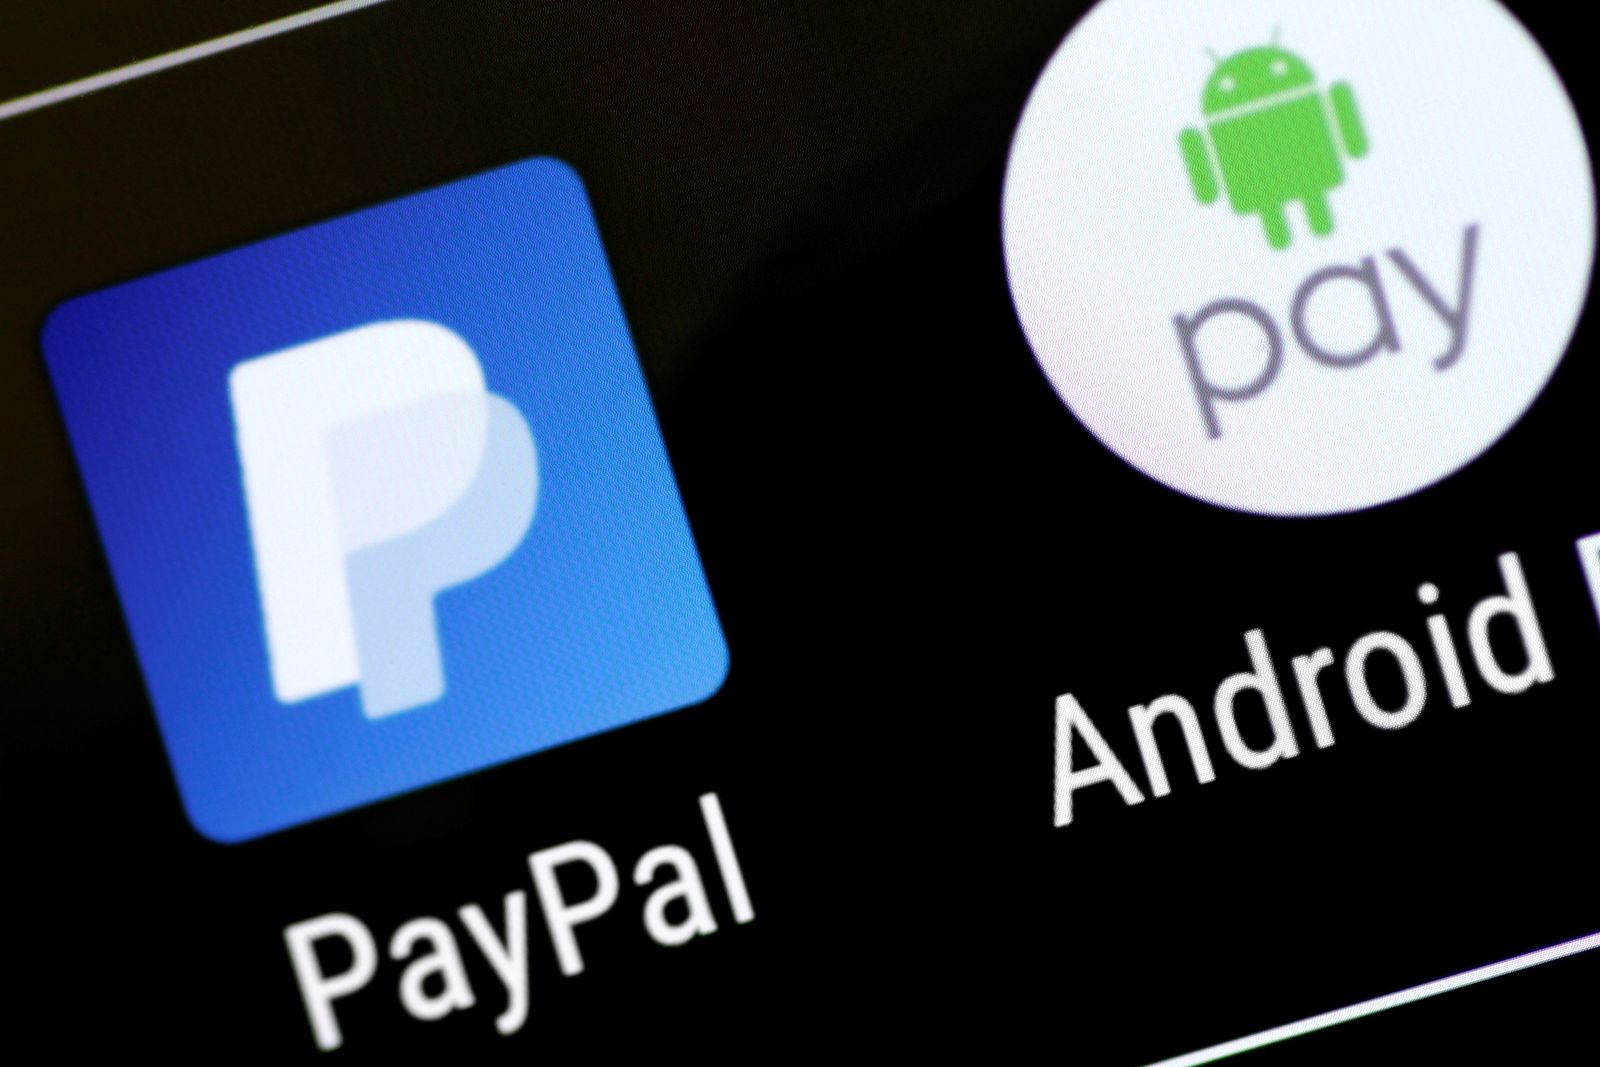 PayPal / Smartphone